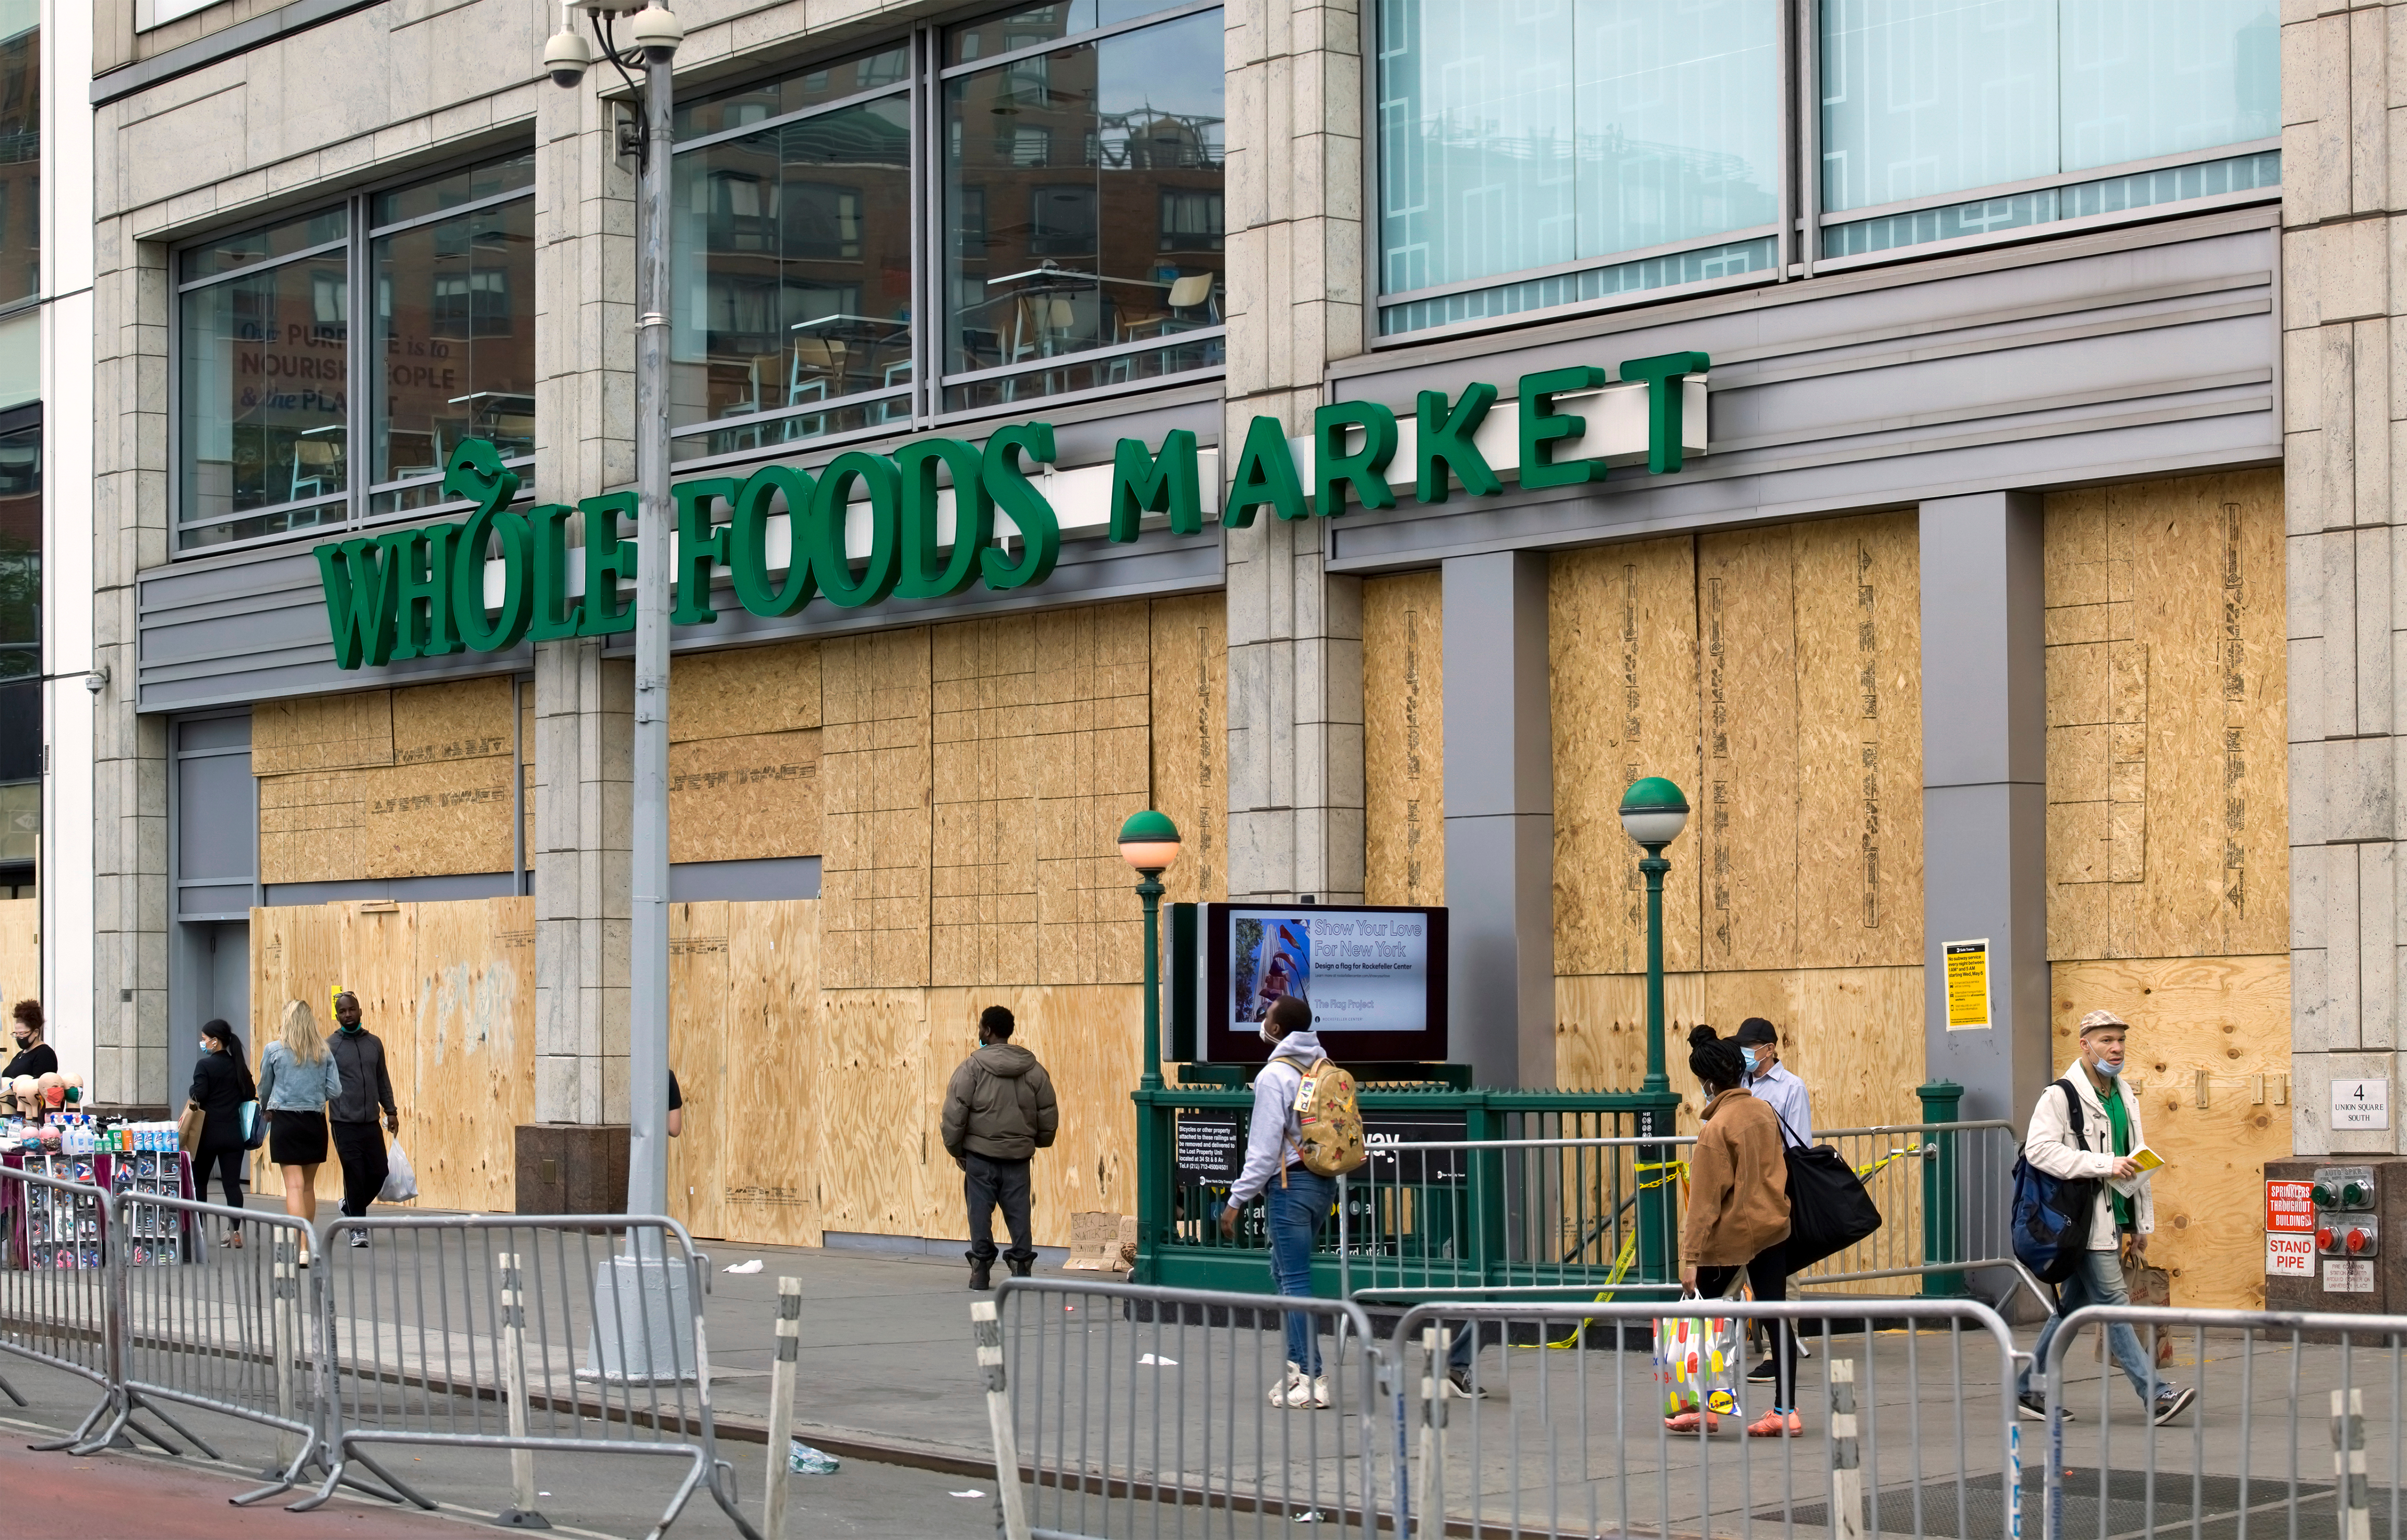 A Whole Foods Market is boarded up to prevent looting during George Floyd protests in New York City on June 2. (Eddtoro/Shutterstock)